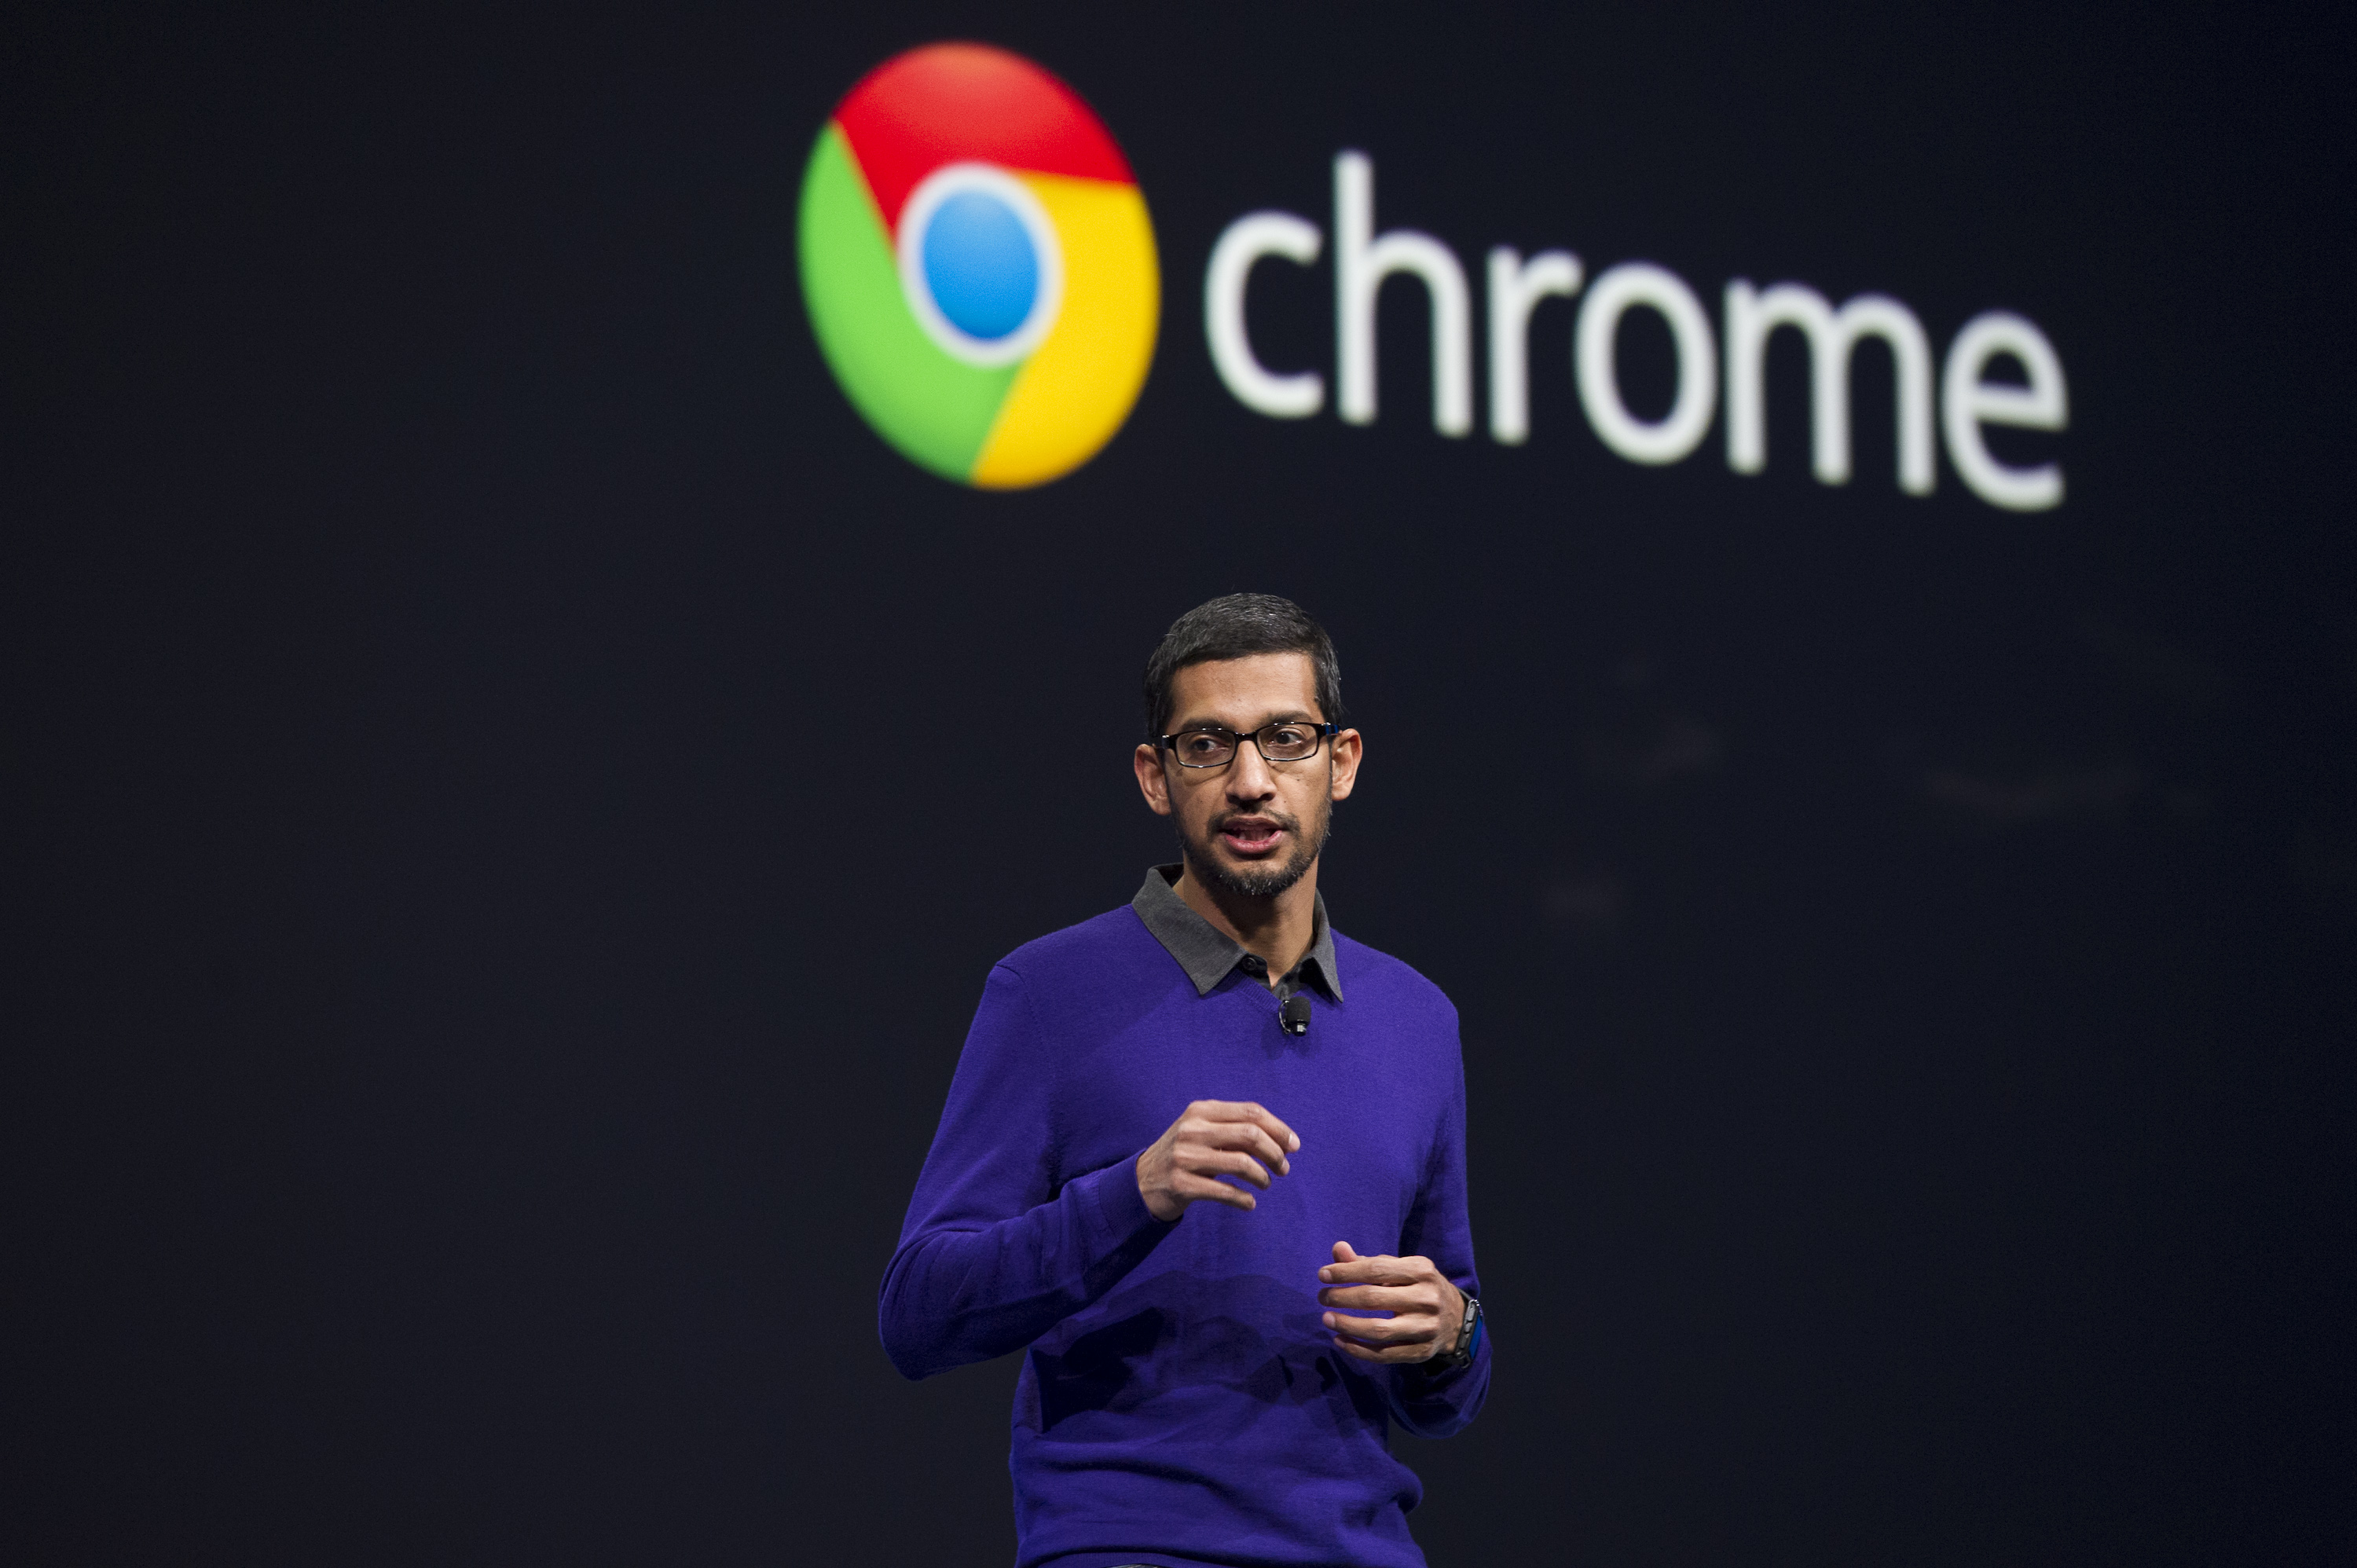 Sundar Pichai, senior vice president of Android, Chrome and Apps for Google Inc., speaks during the Google I/O Annual Developers Conference in San Francisco, California, U.S., on Wednesday, May 15, 2013.